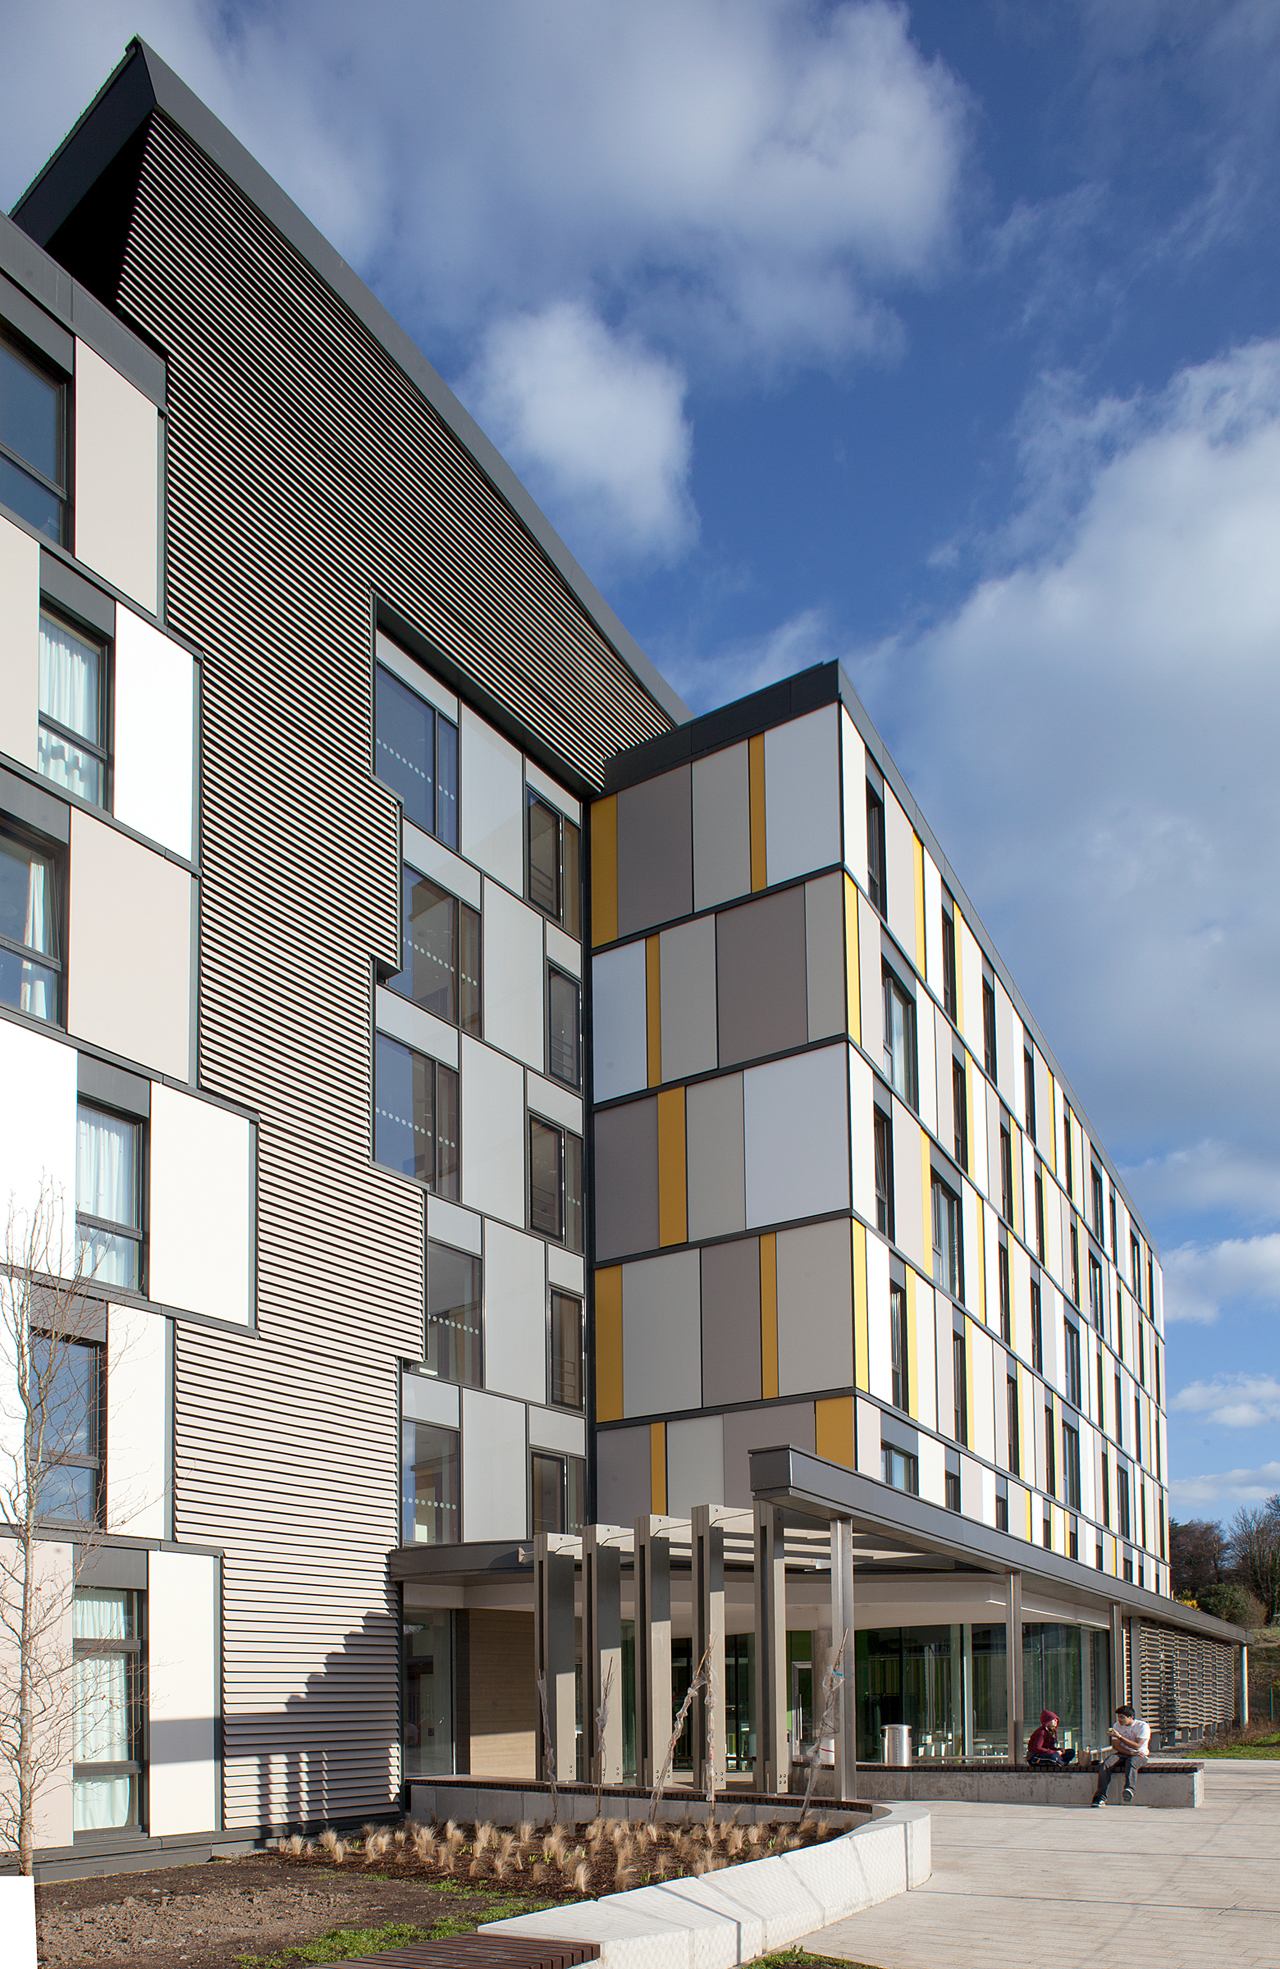 affordable housing student design - HD1280×1969